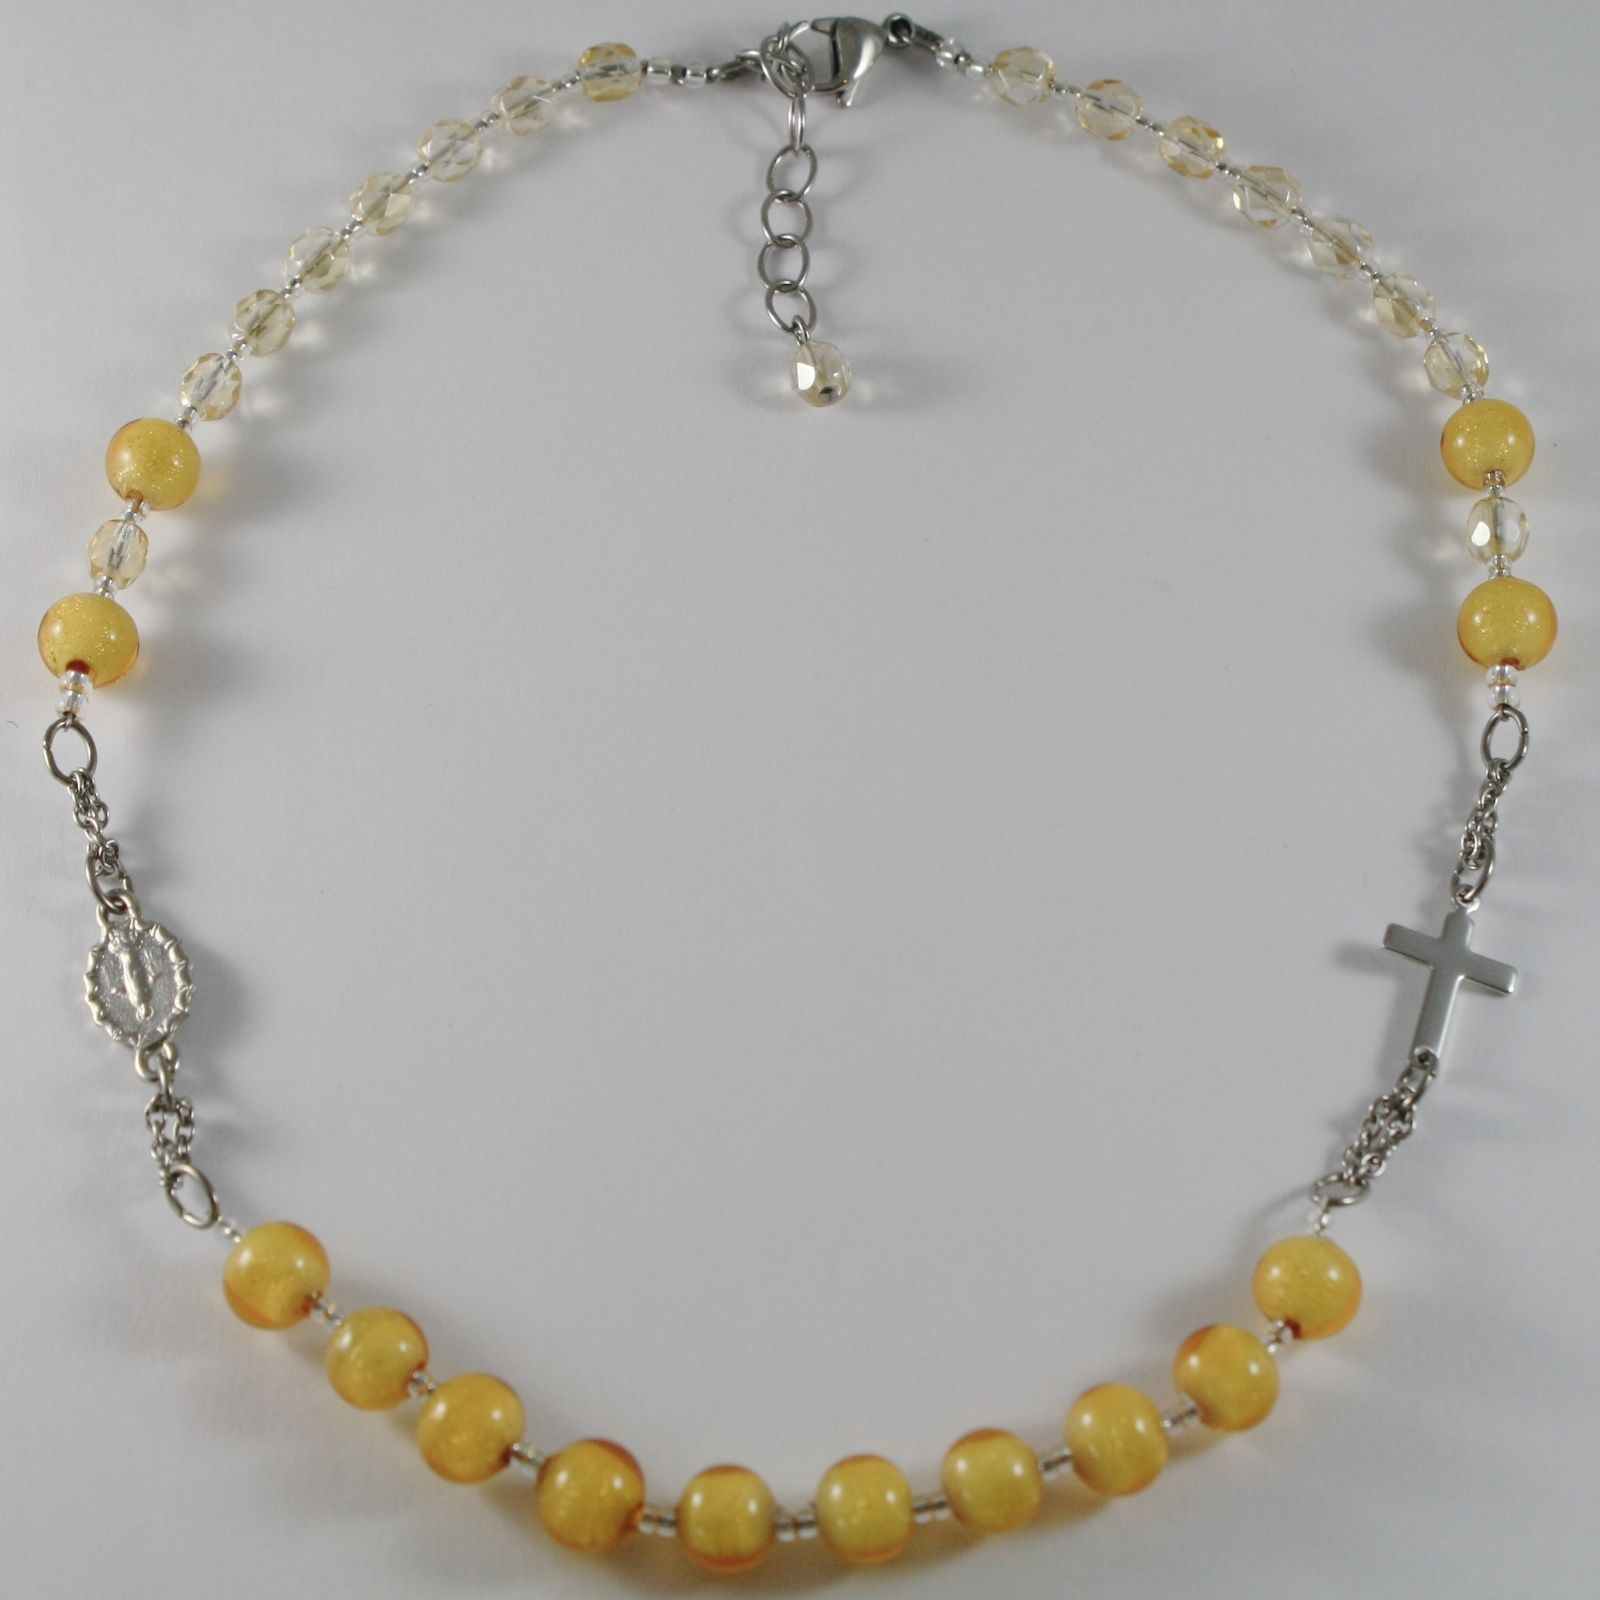 NECKLACE ANTICA MURRINA VENEZIA IN ROSARIO WITH MURANO GLASS YELLOW CROSS